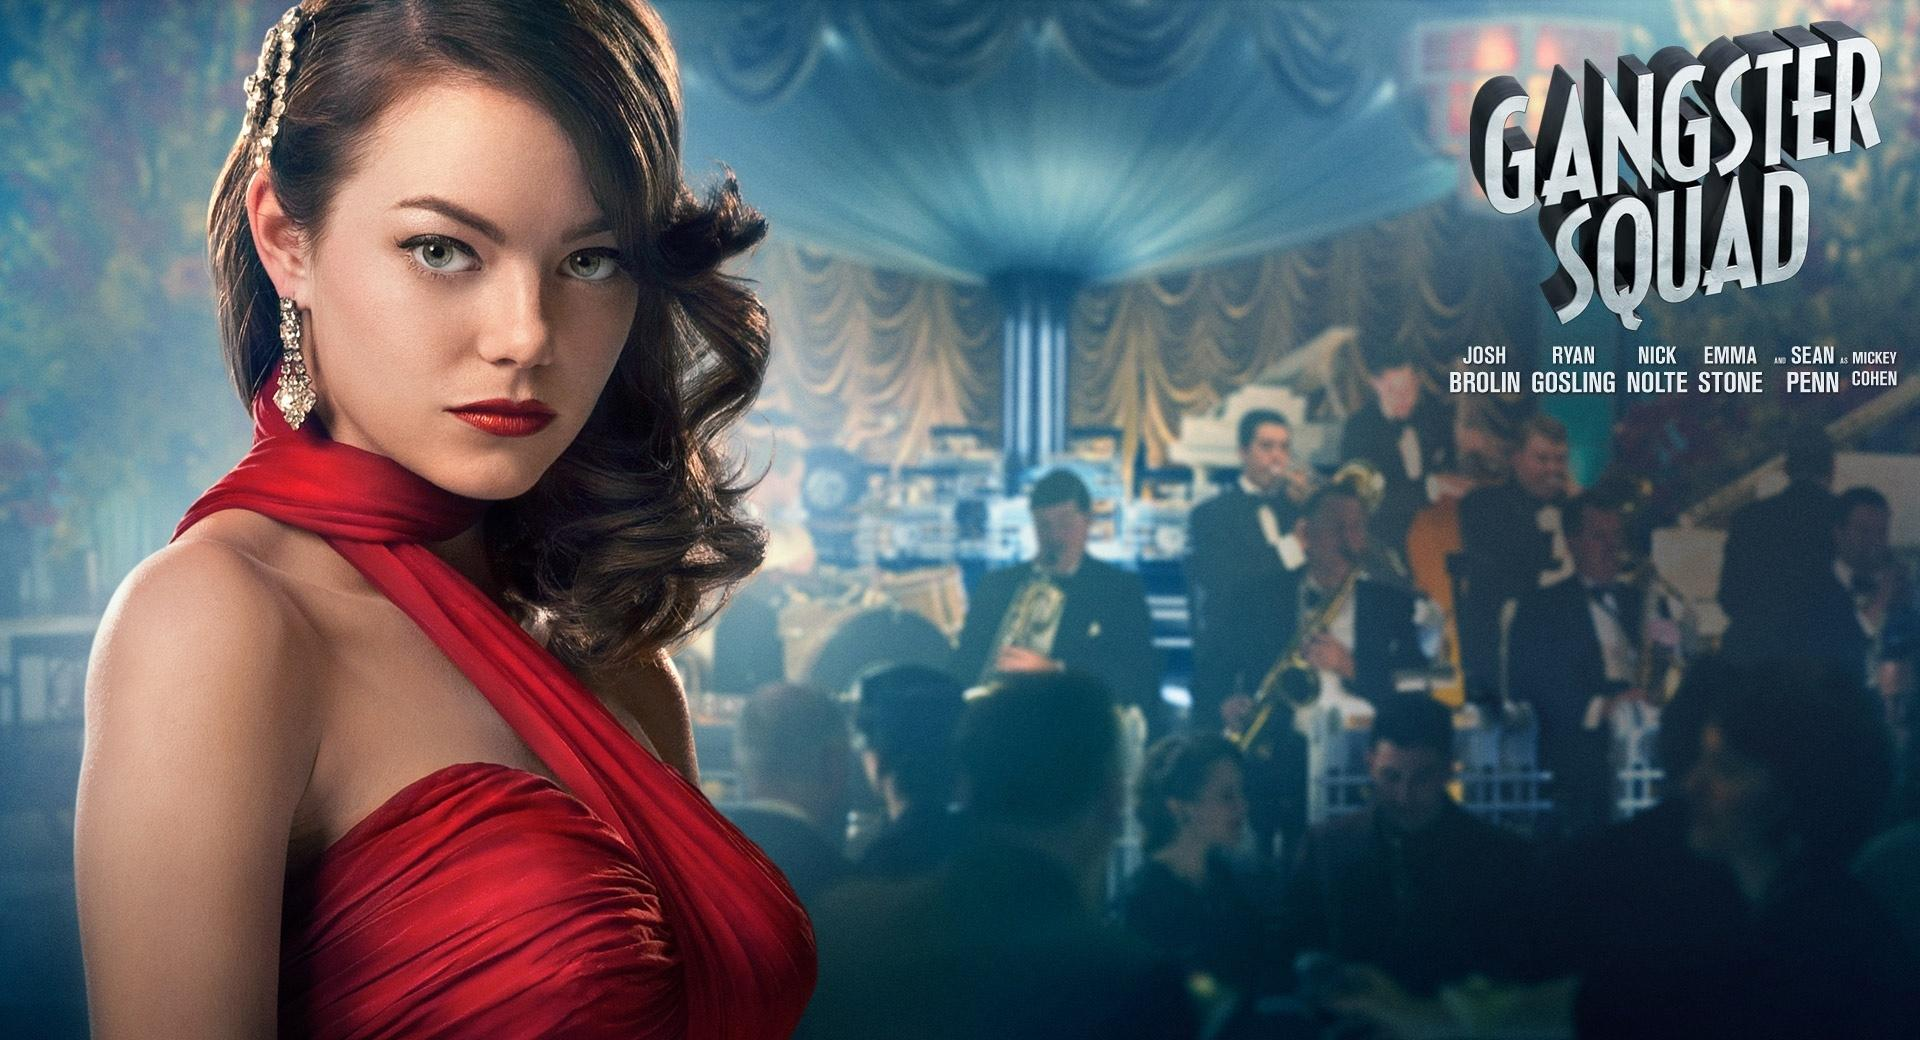 Emma Stone in Gangster Squad wallpapers HD quality